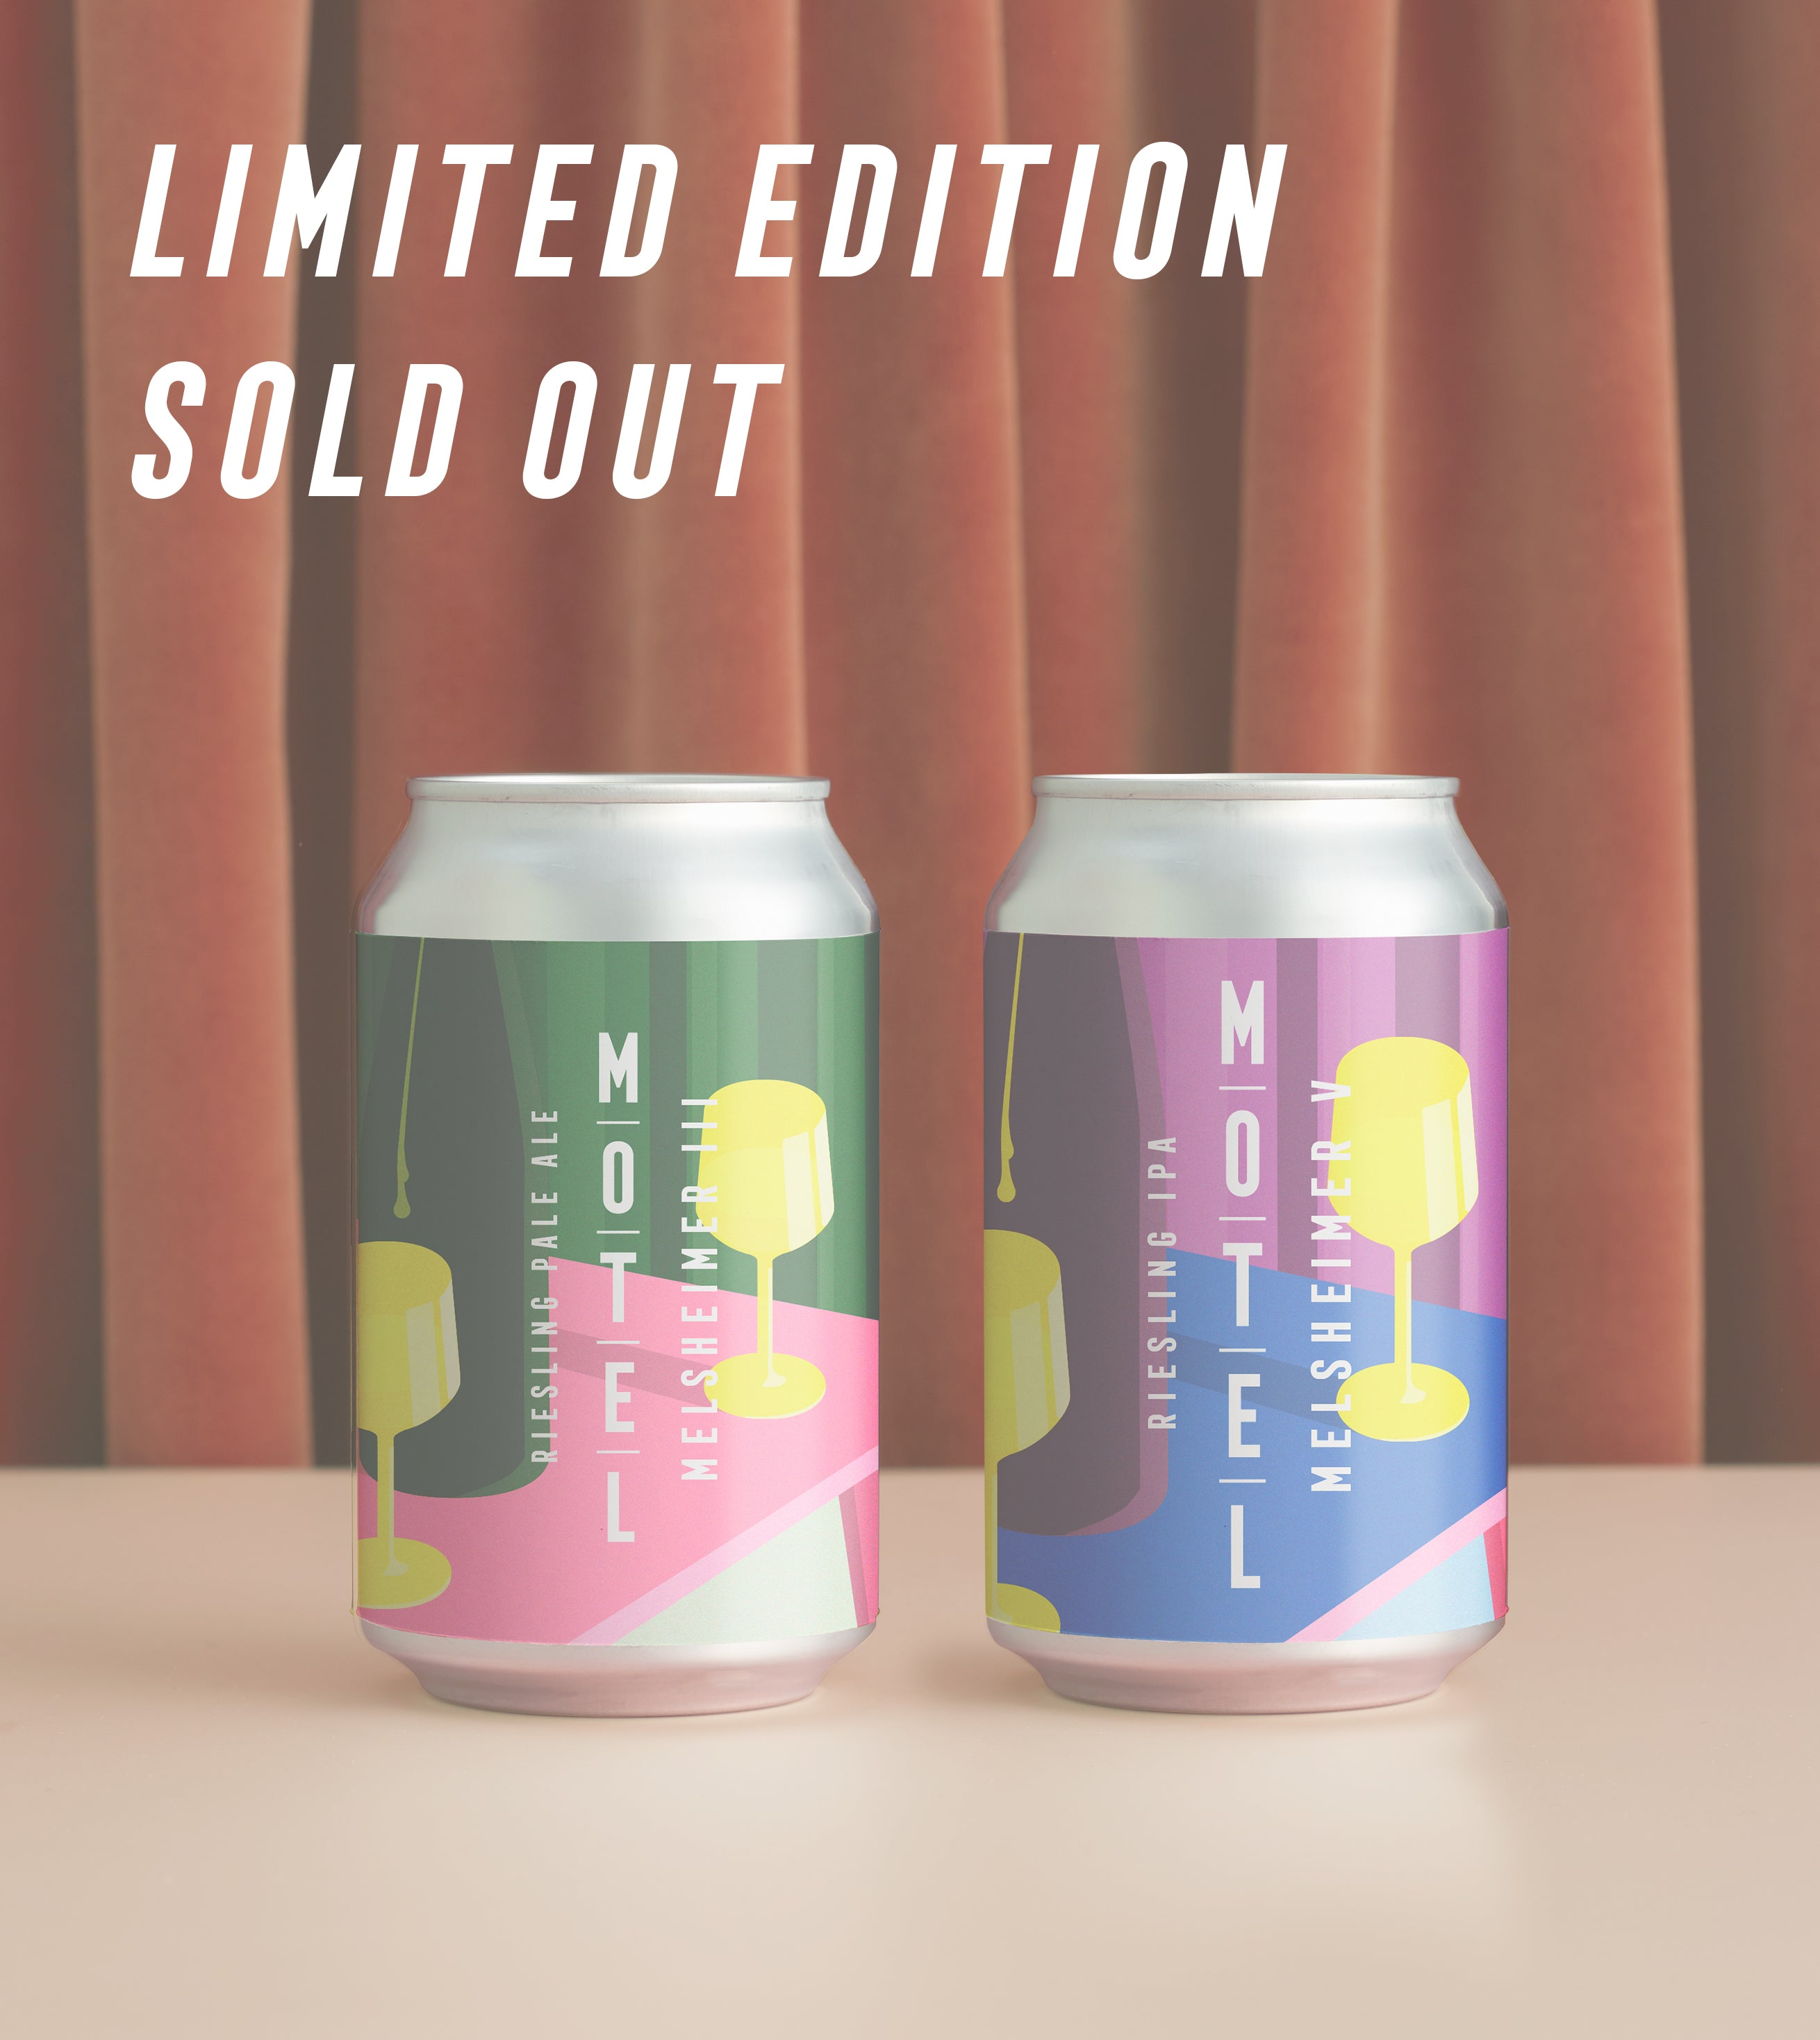 Biodynamic Beer Pack June 2020 (6 / 12 Pack)